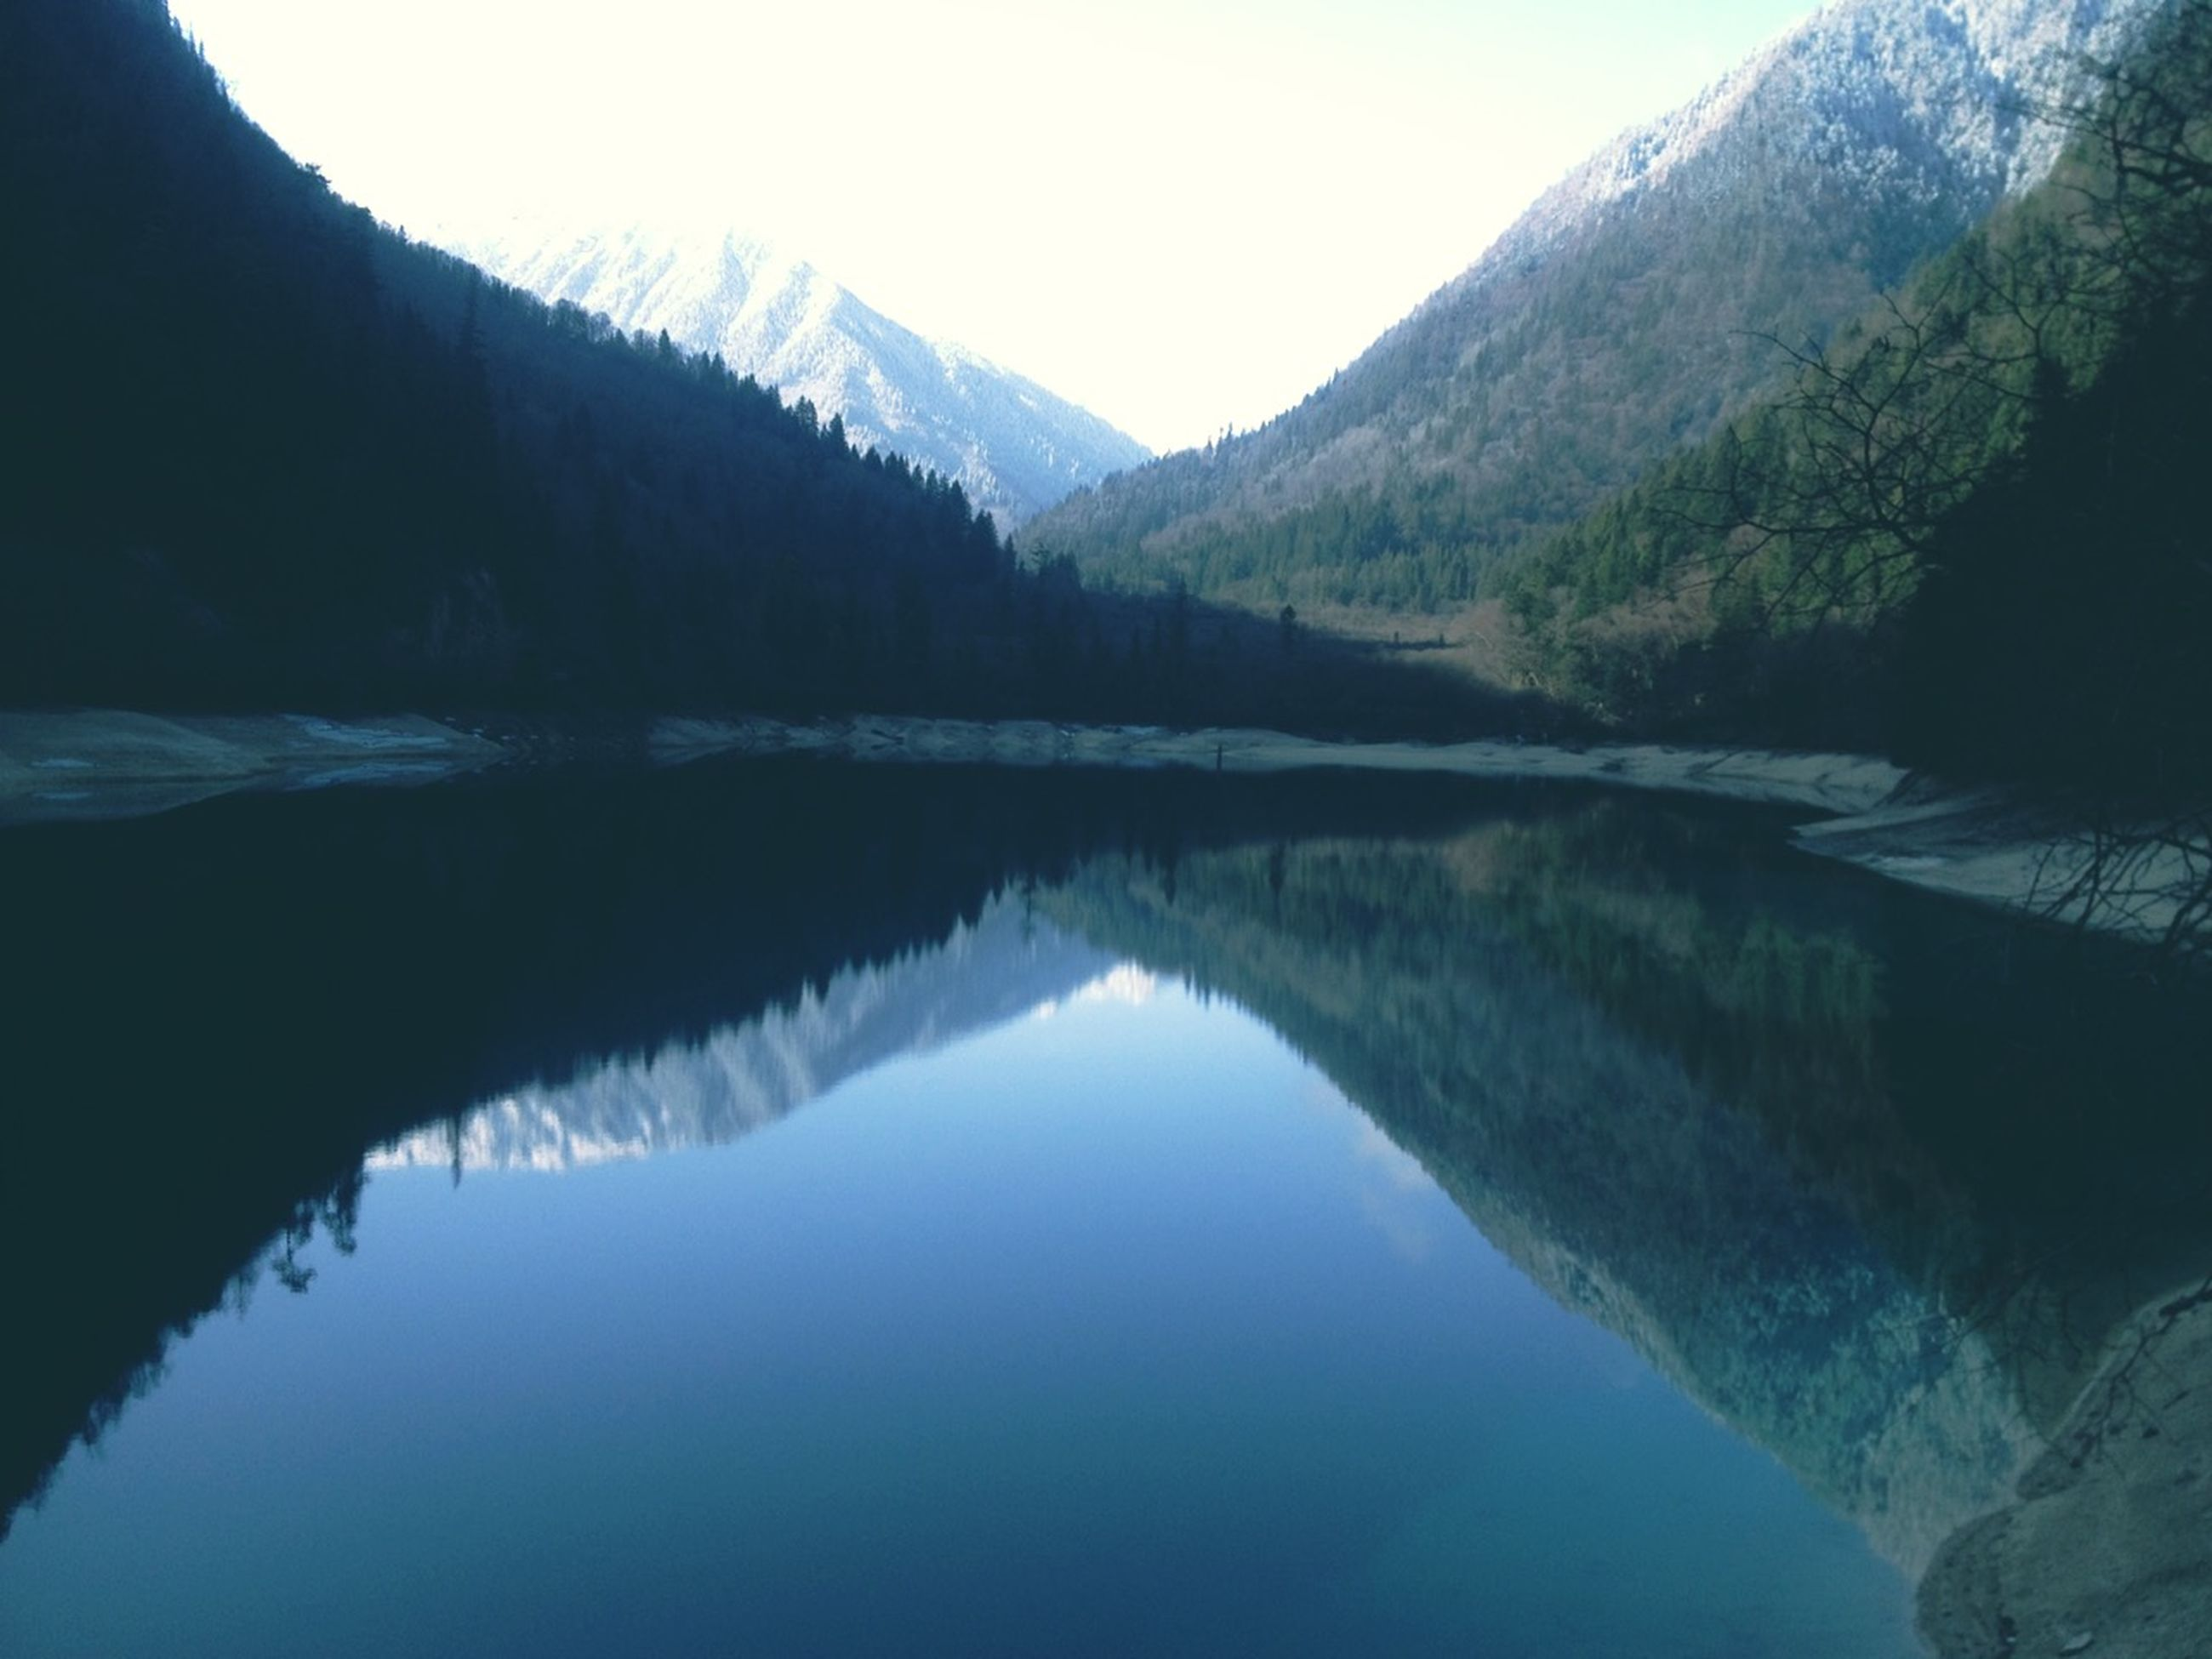 mountain, water, reflection, lake, tranquility, tranquil scene, scenics, mountain range, beauty in nature, waterfront, nature, standing water, tree, river, clear sky, idyllic, calm, non-urban scene, sky, landscape